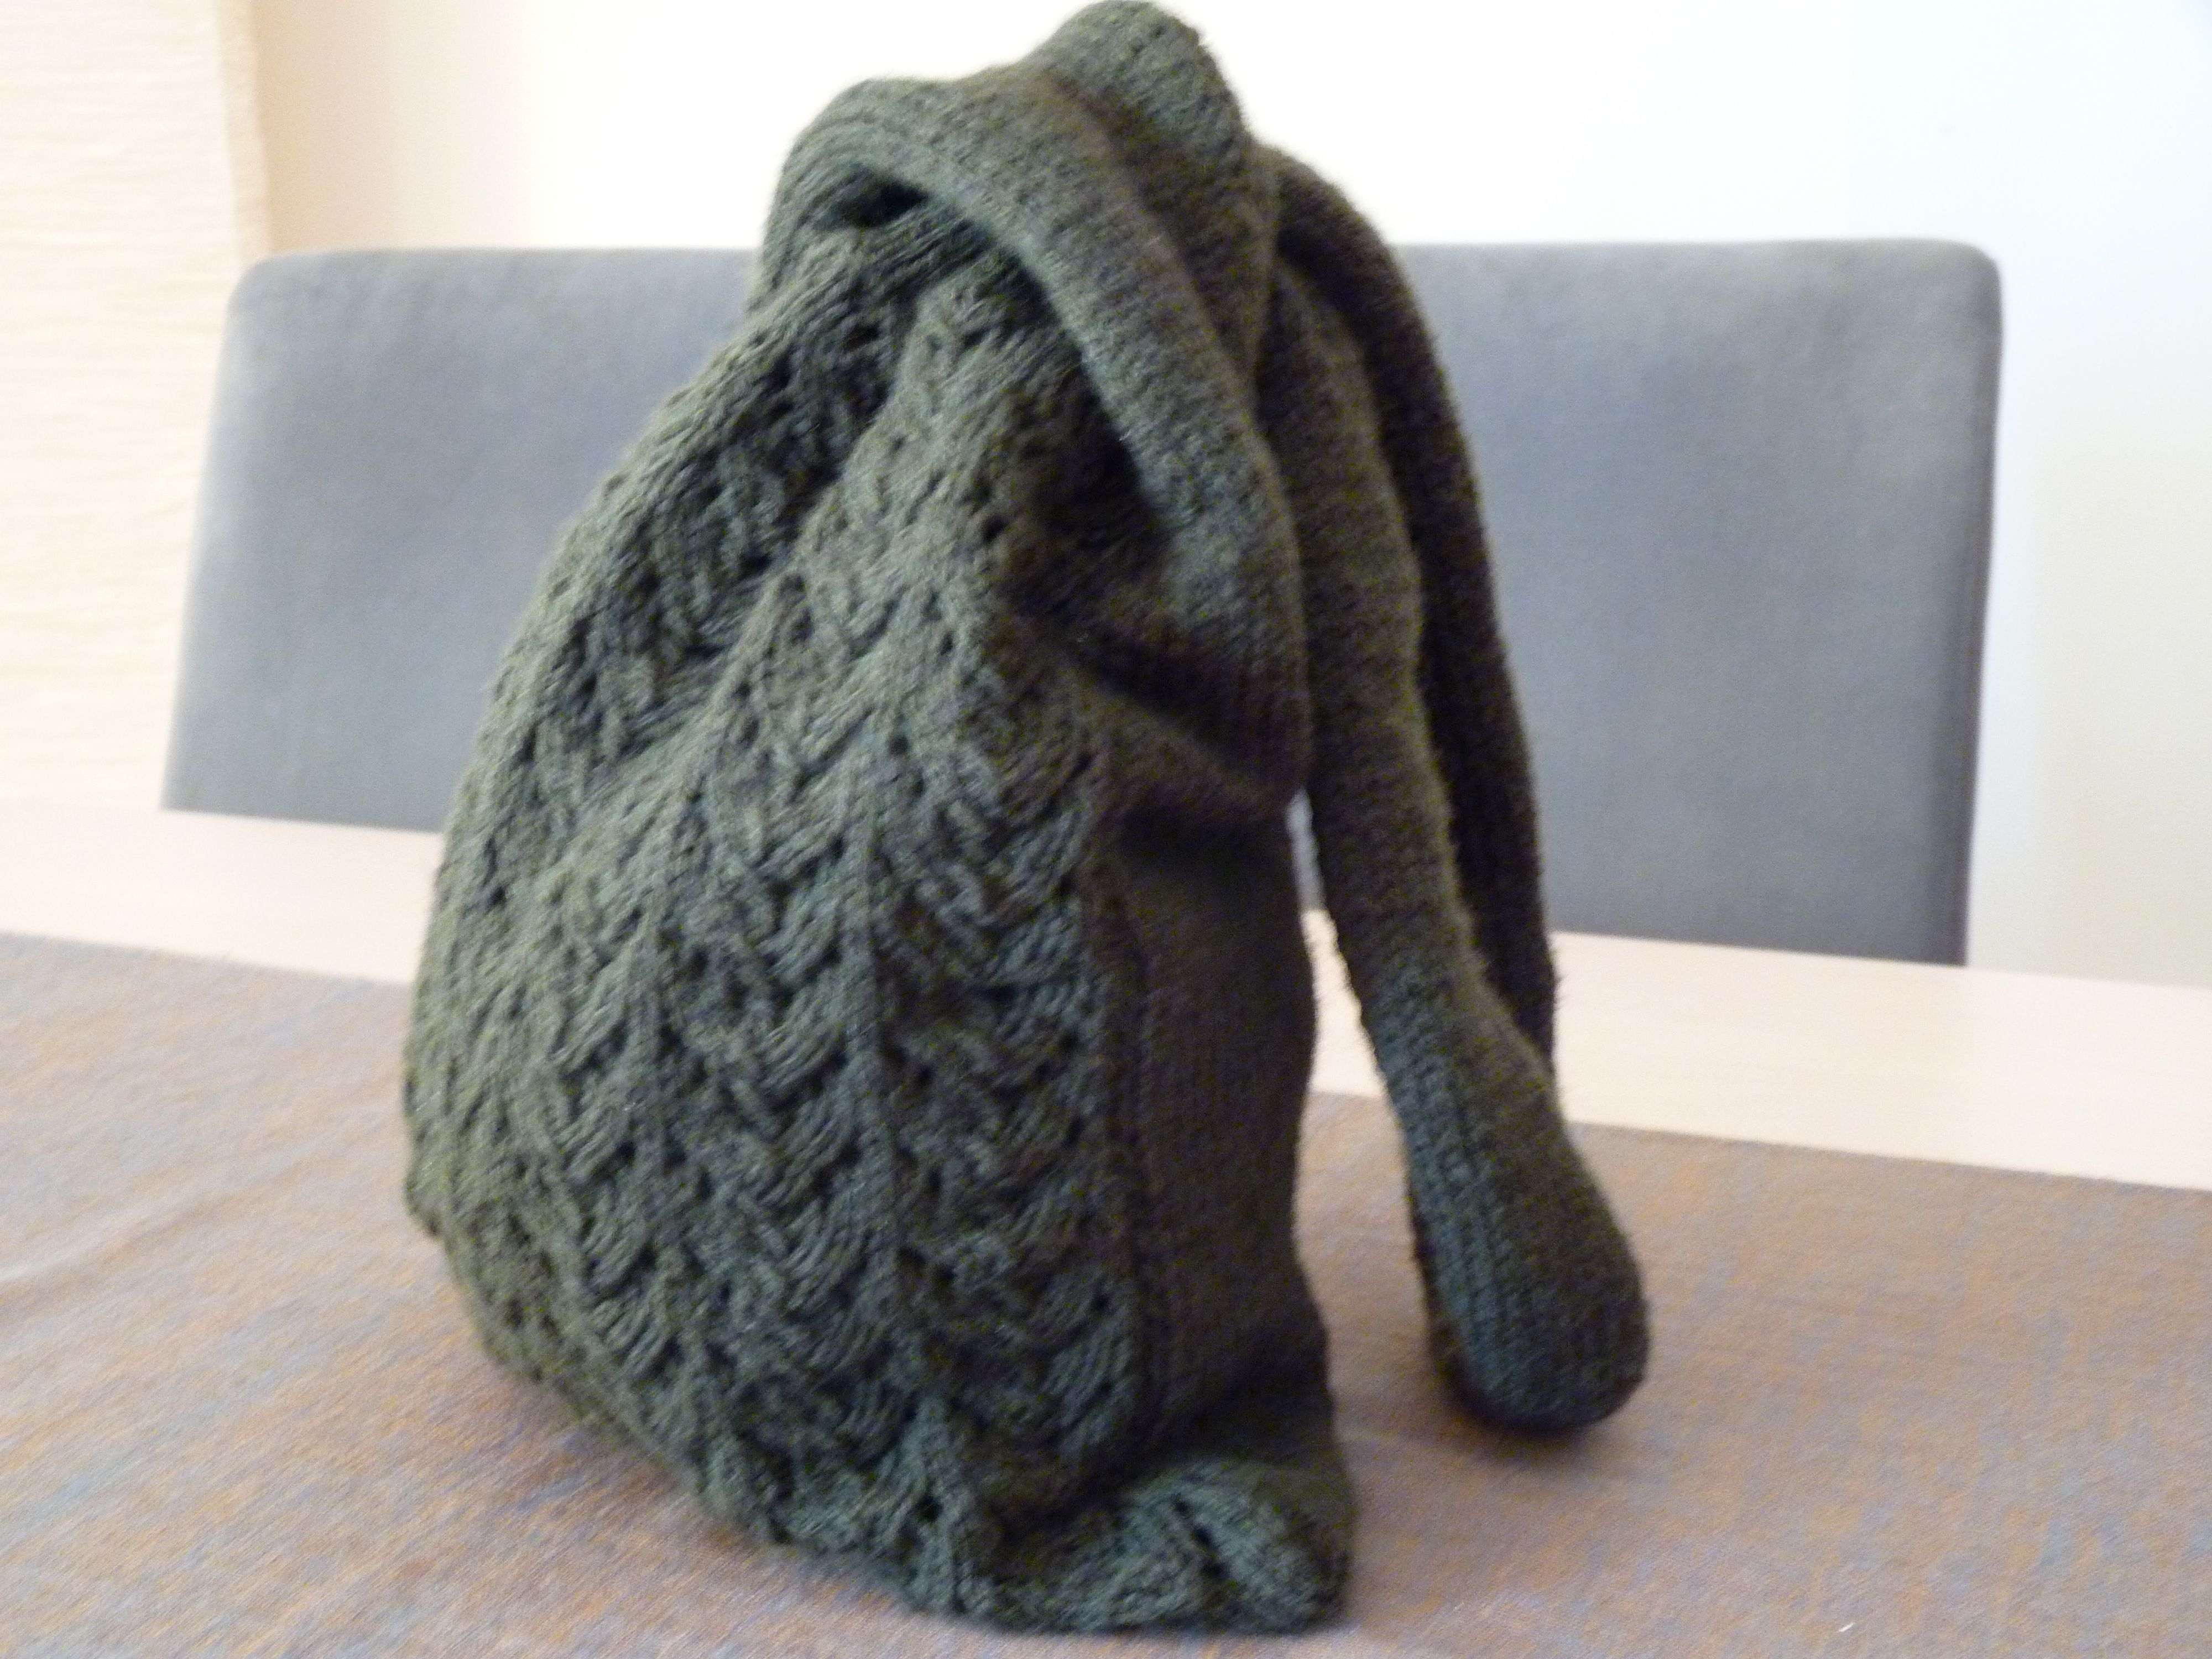 knitted japanese knot bag crafts Pinterest